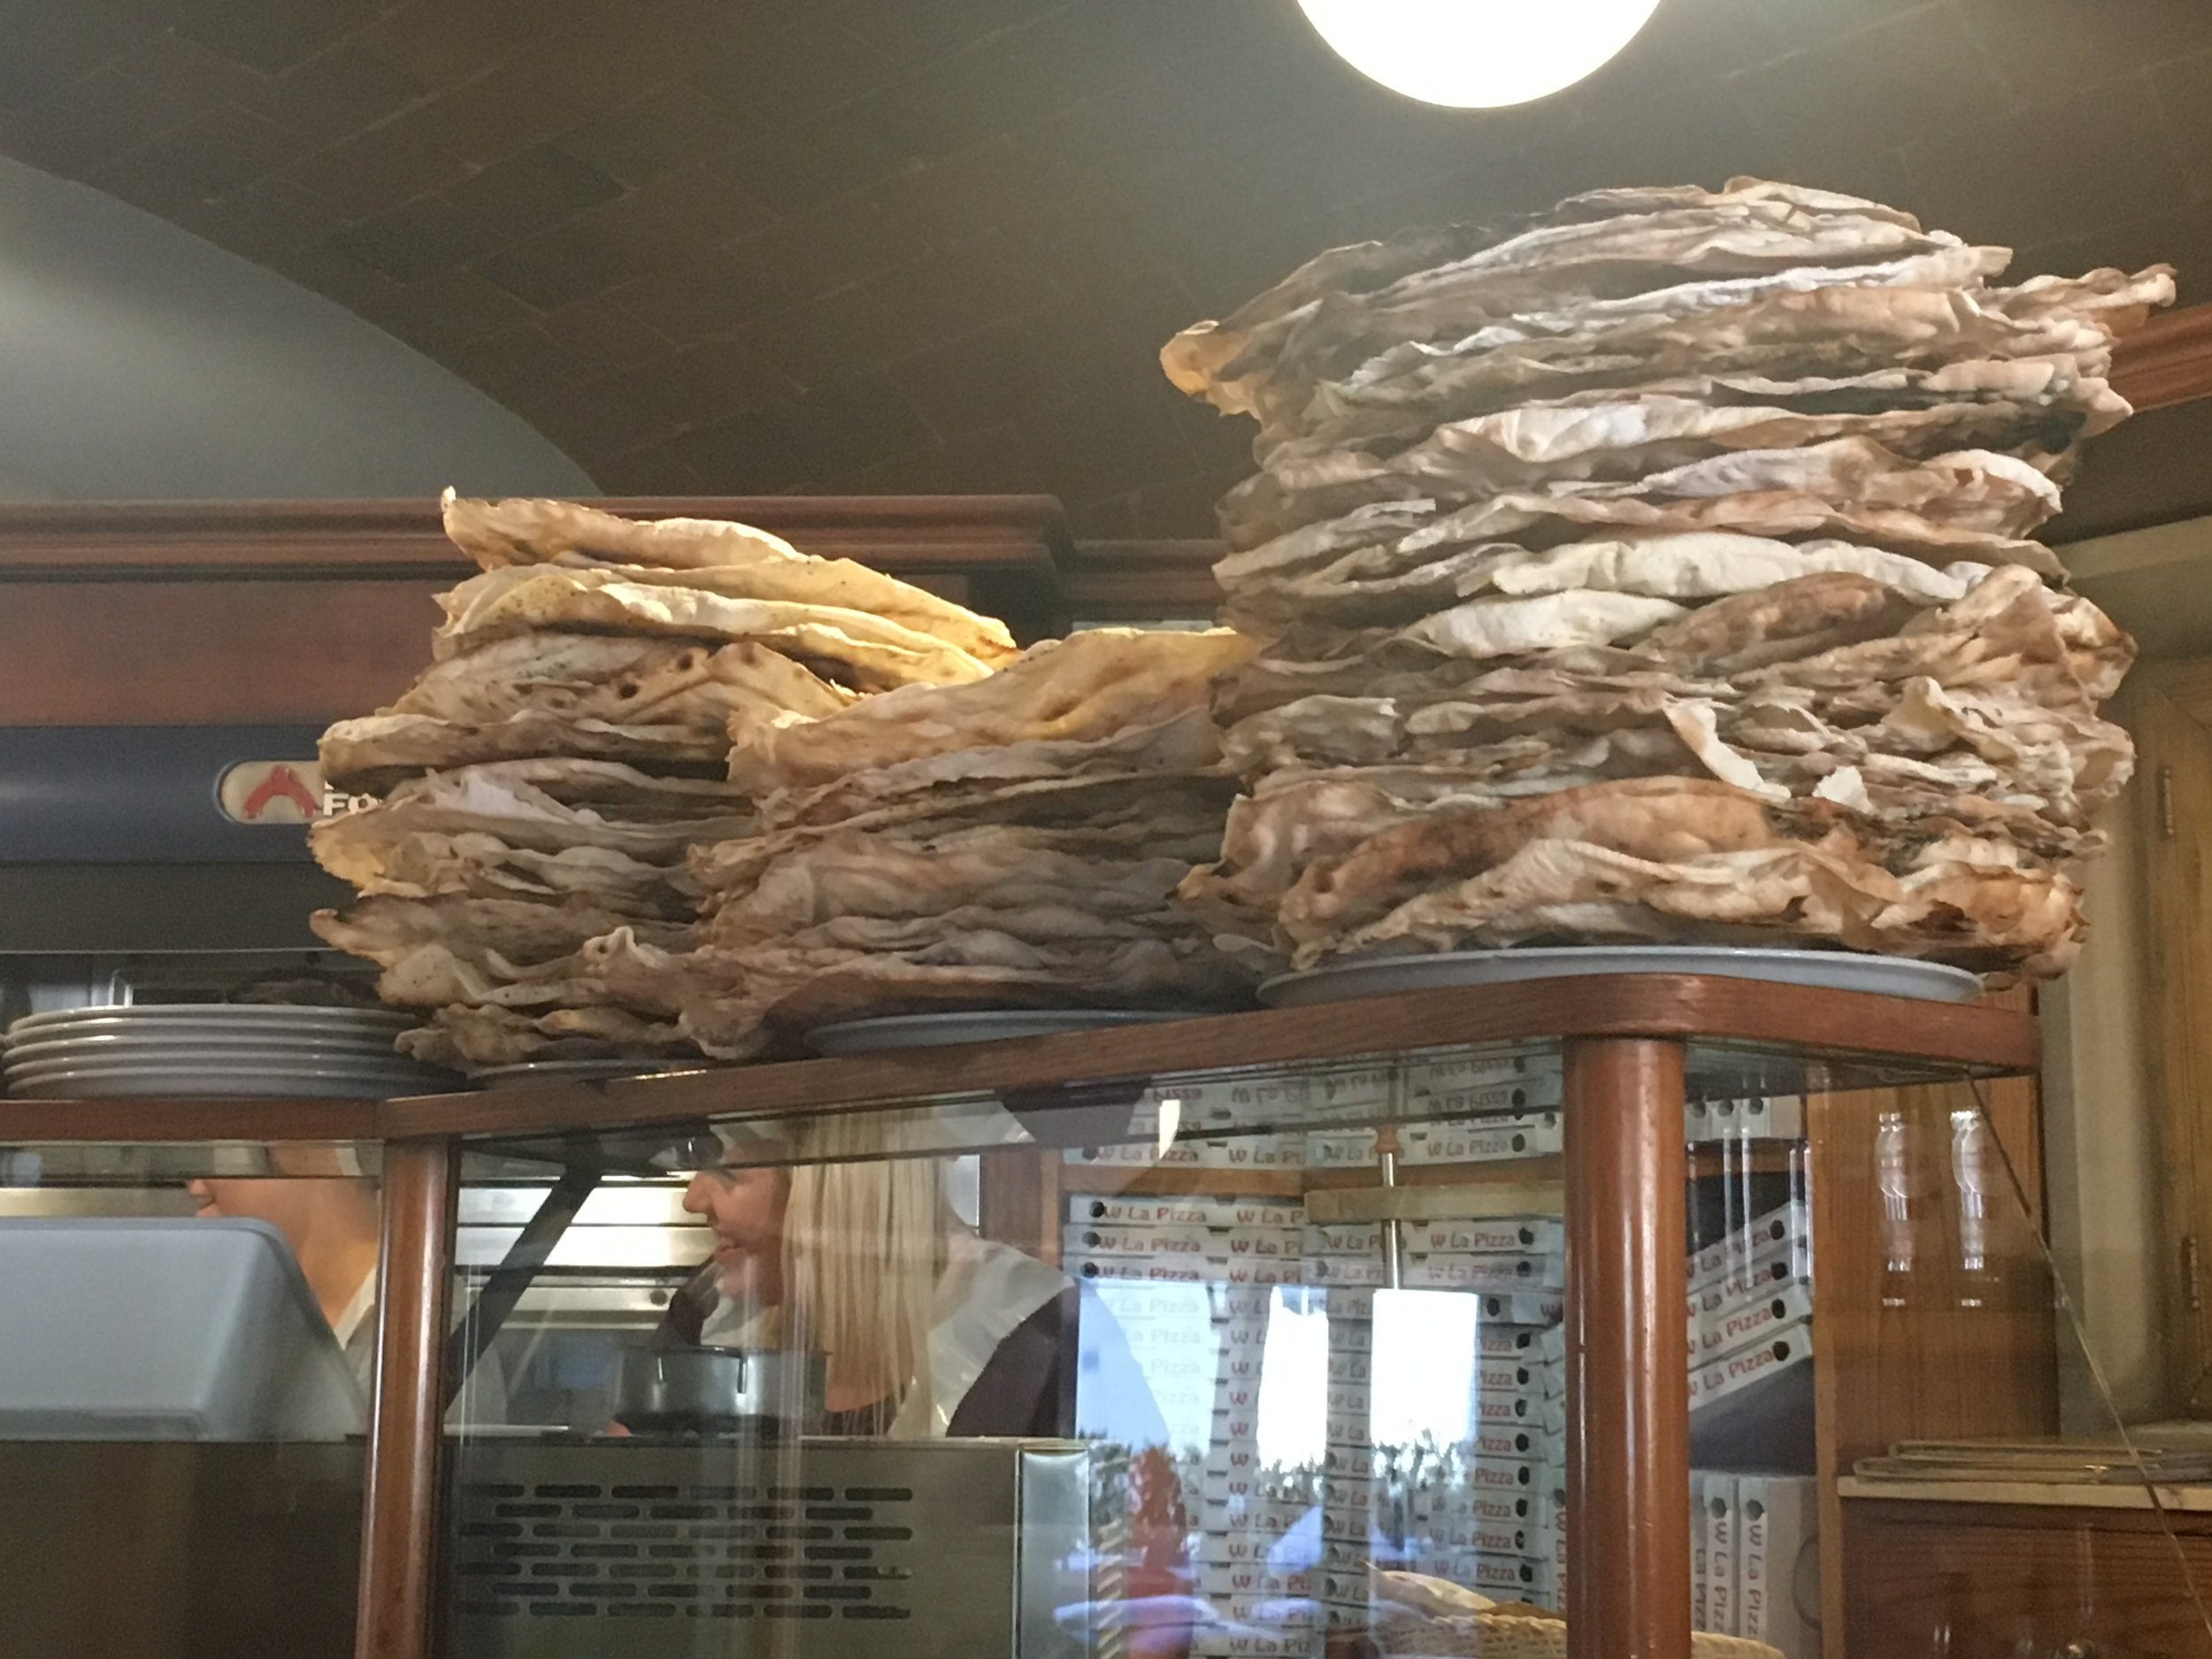 Crisp flat bread piled high in La Cantina, Greve